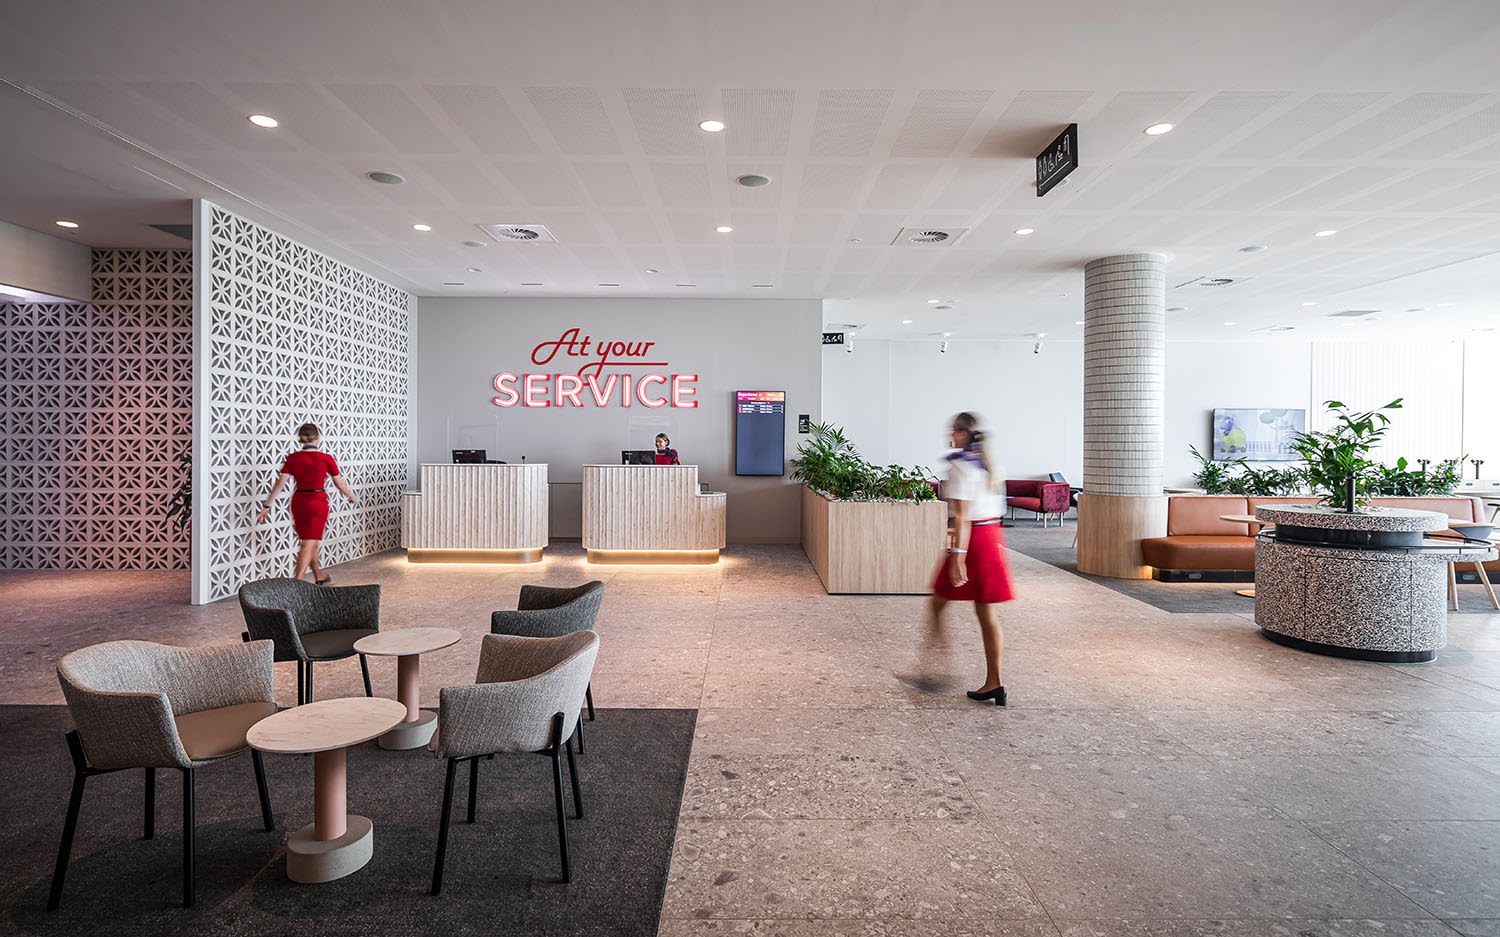 The Virgin Australia Adelaide Lounge